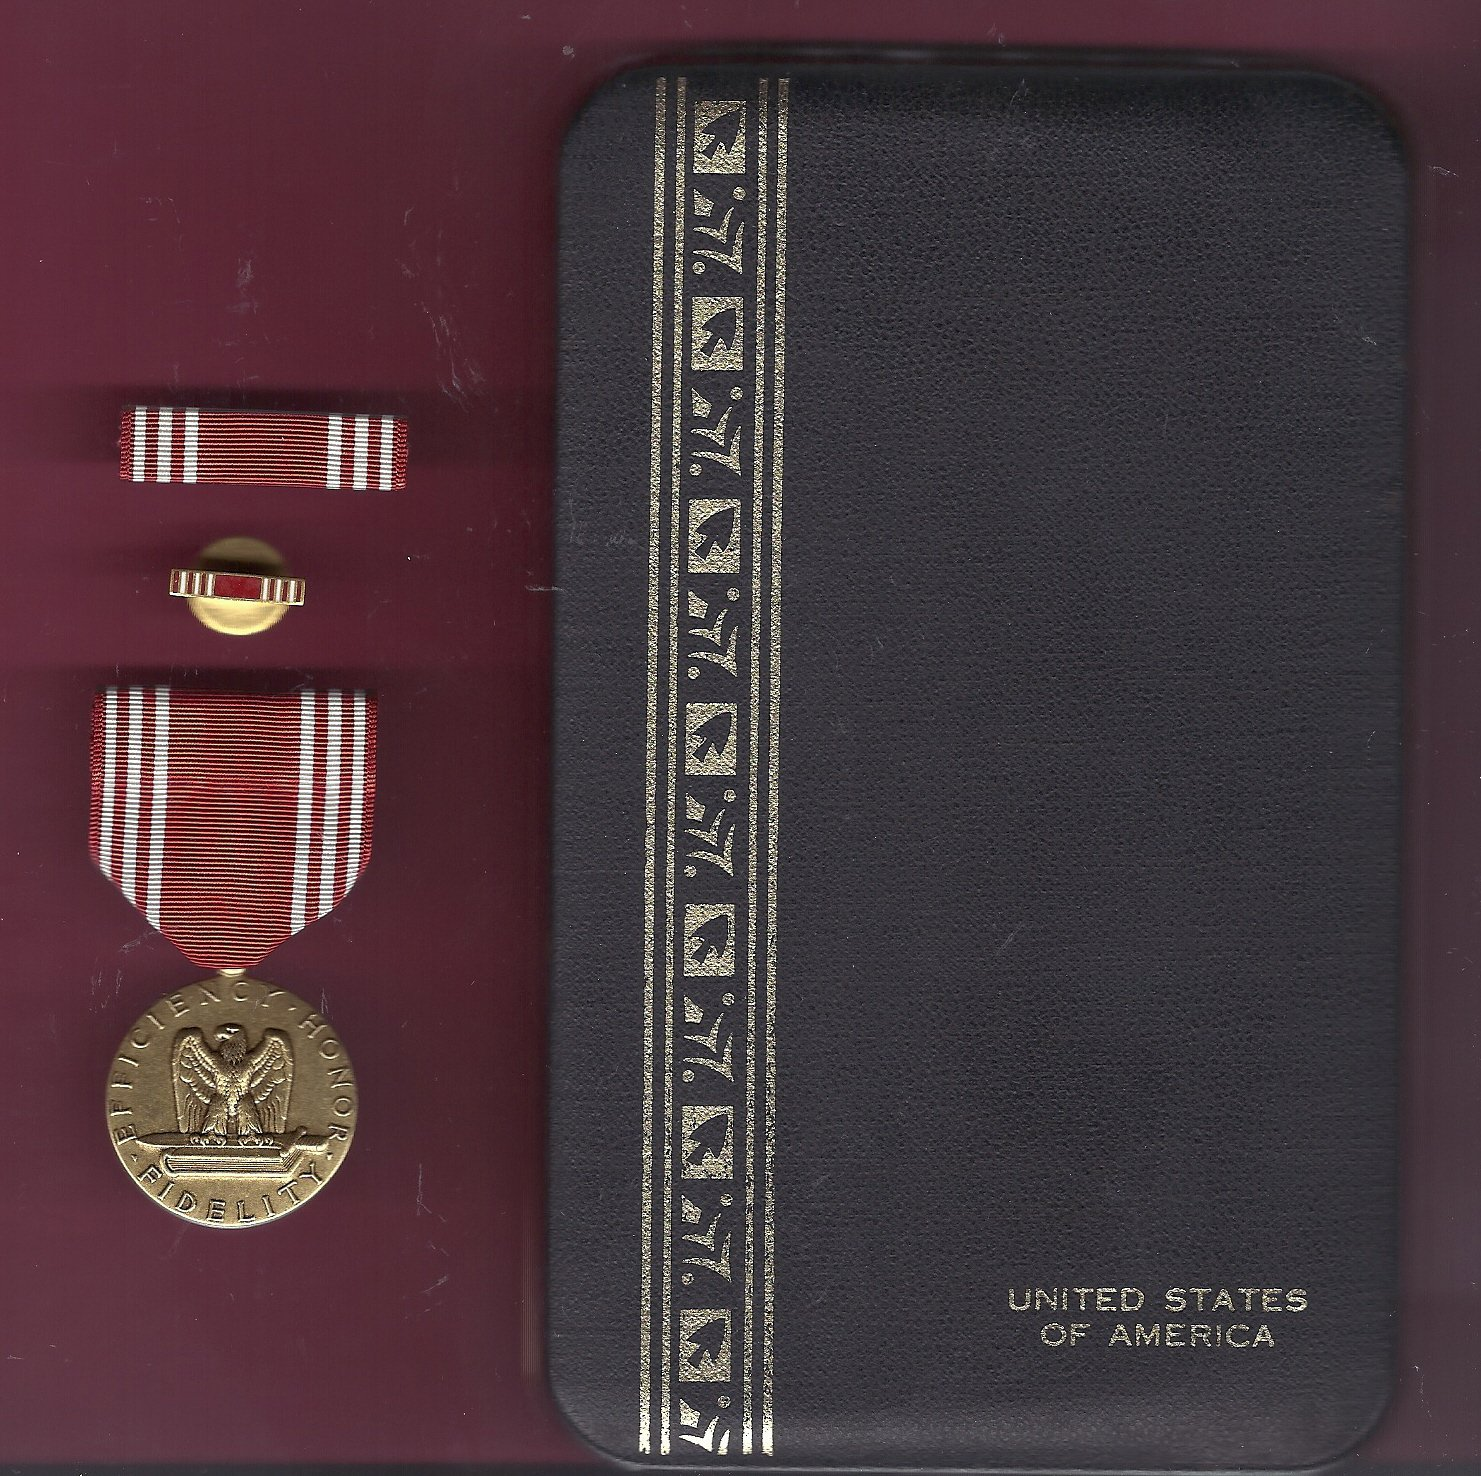 Army Good Conduct medal in case with ribbon bar and lapel pin